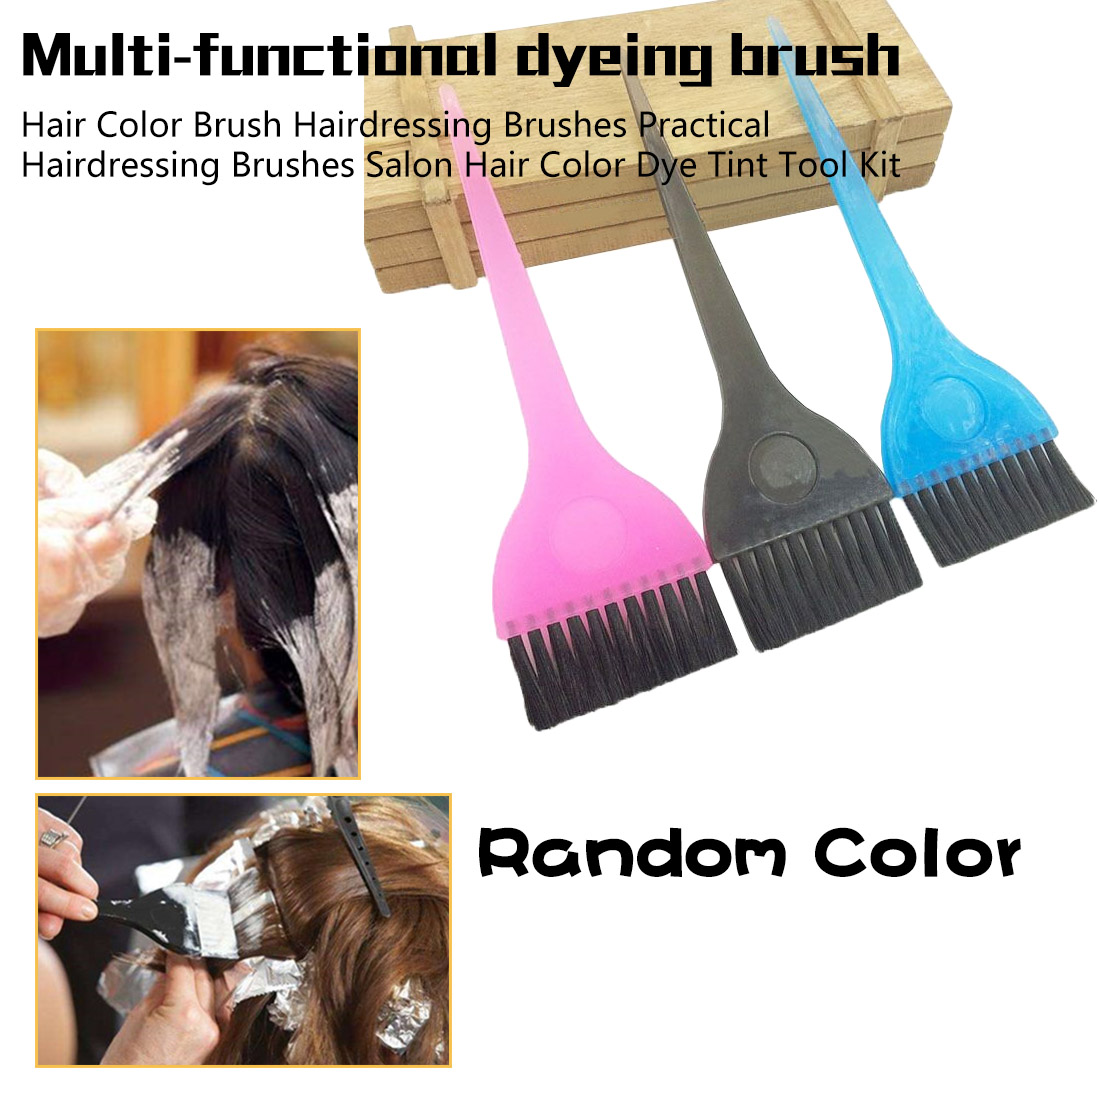 Hairdressing Brushes Hair Color Brush Practical Hairdressing Brushes Salon Hair Color Dye Tint Tool Kit Color Randomised